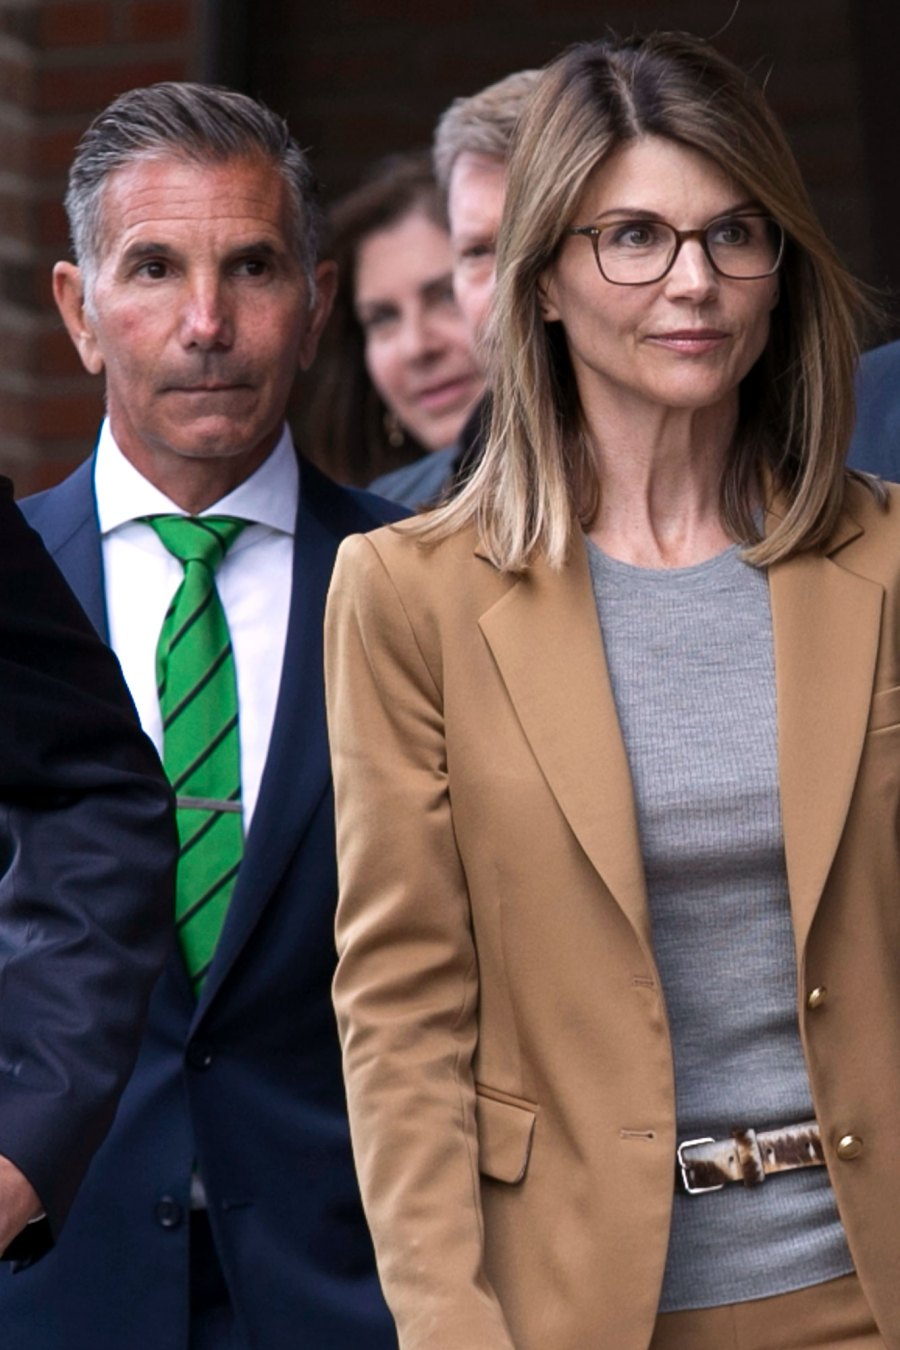 Lori Loughlin and Mossimo Giannulli Purchase Home Amid College Admissions Scandal